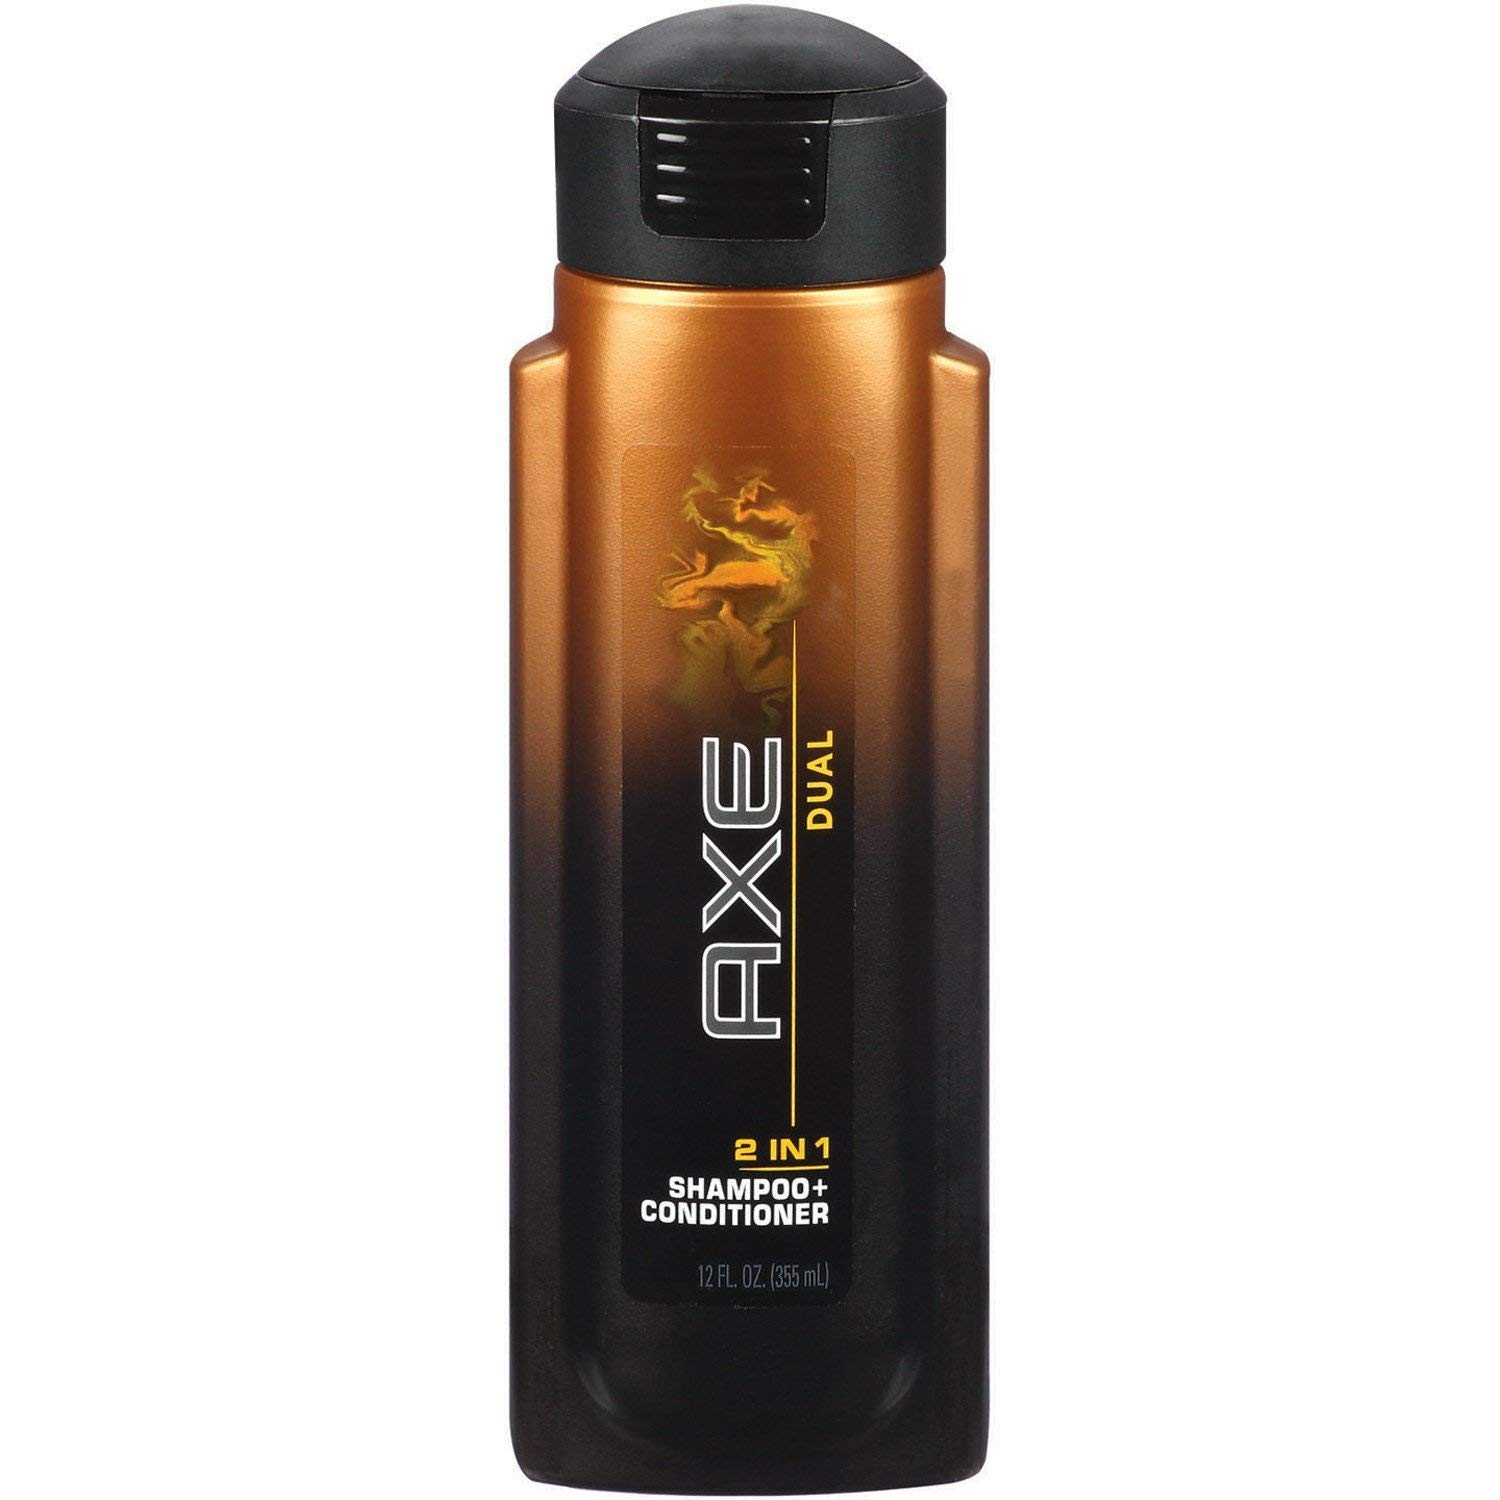 AXE Dual 2 in 1 Shampoo Plus Conditioner, 12 Ounce - 6 per case. by AXE